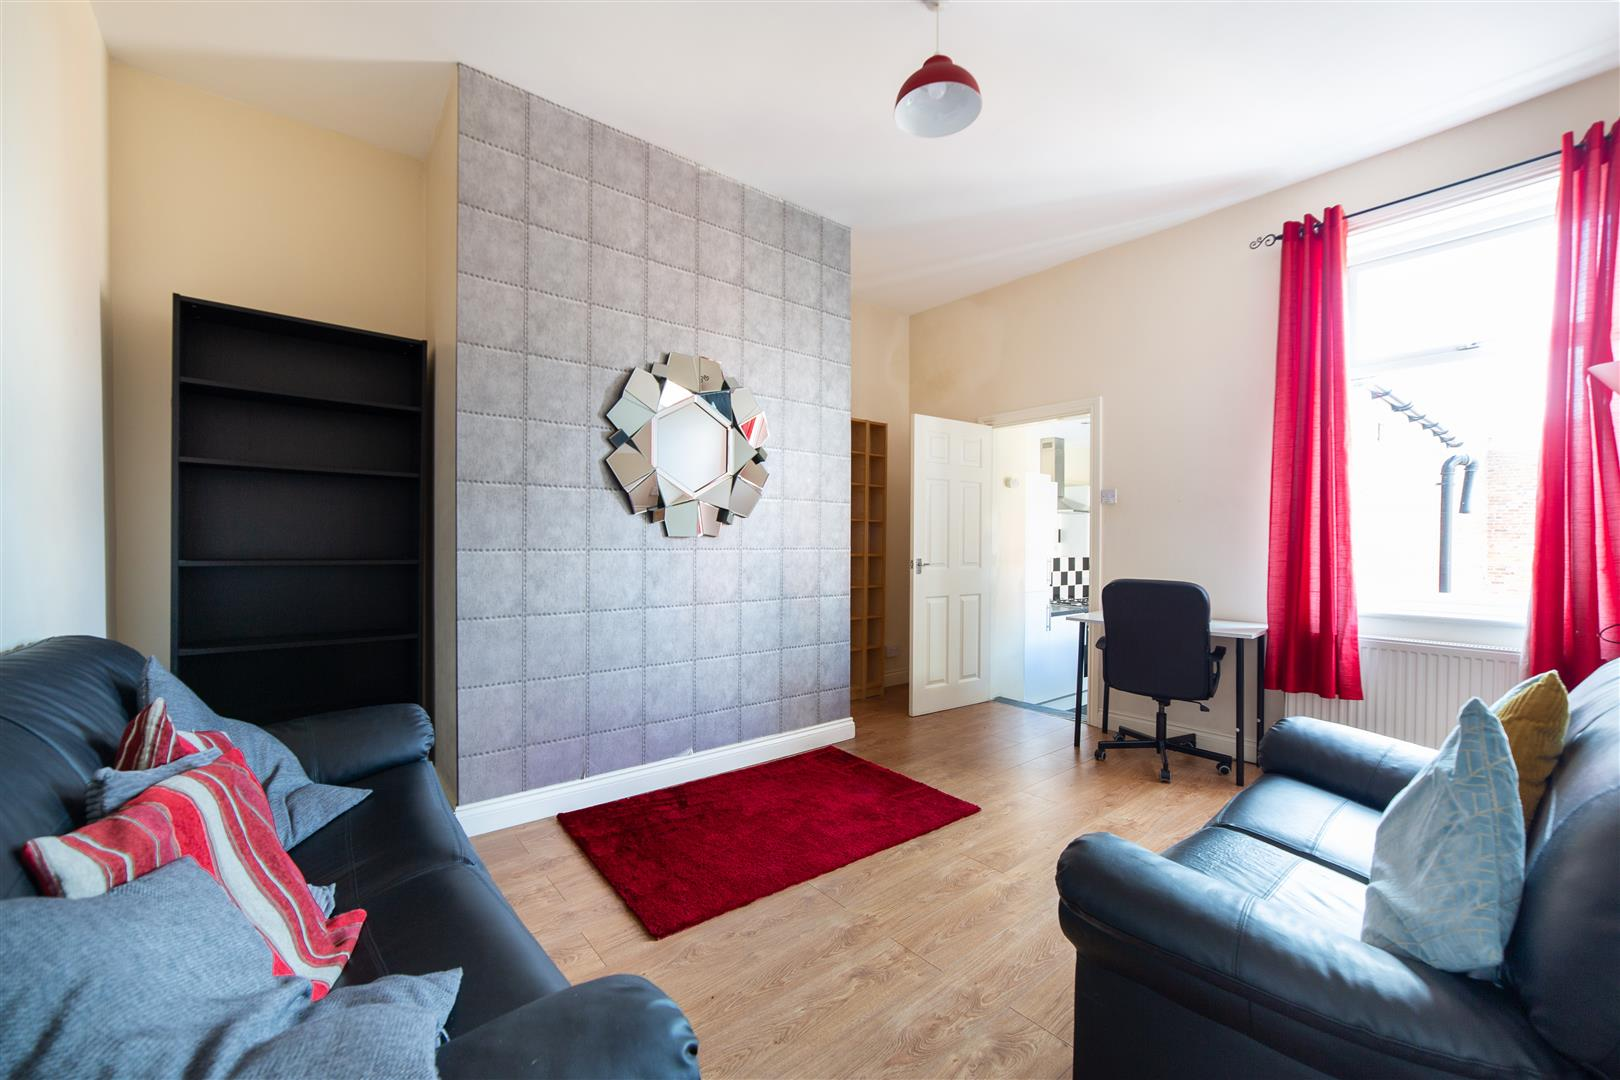 3 bed flat to rent in Newcastle Upon Tyne, NE6 5LU  - Property Image 1